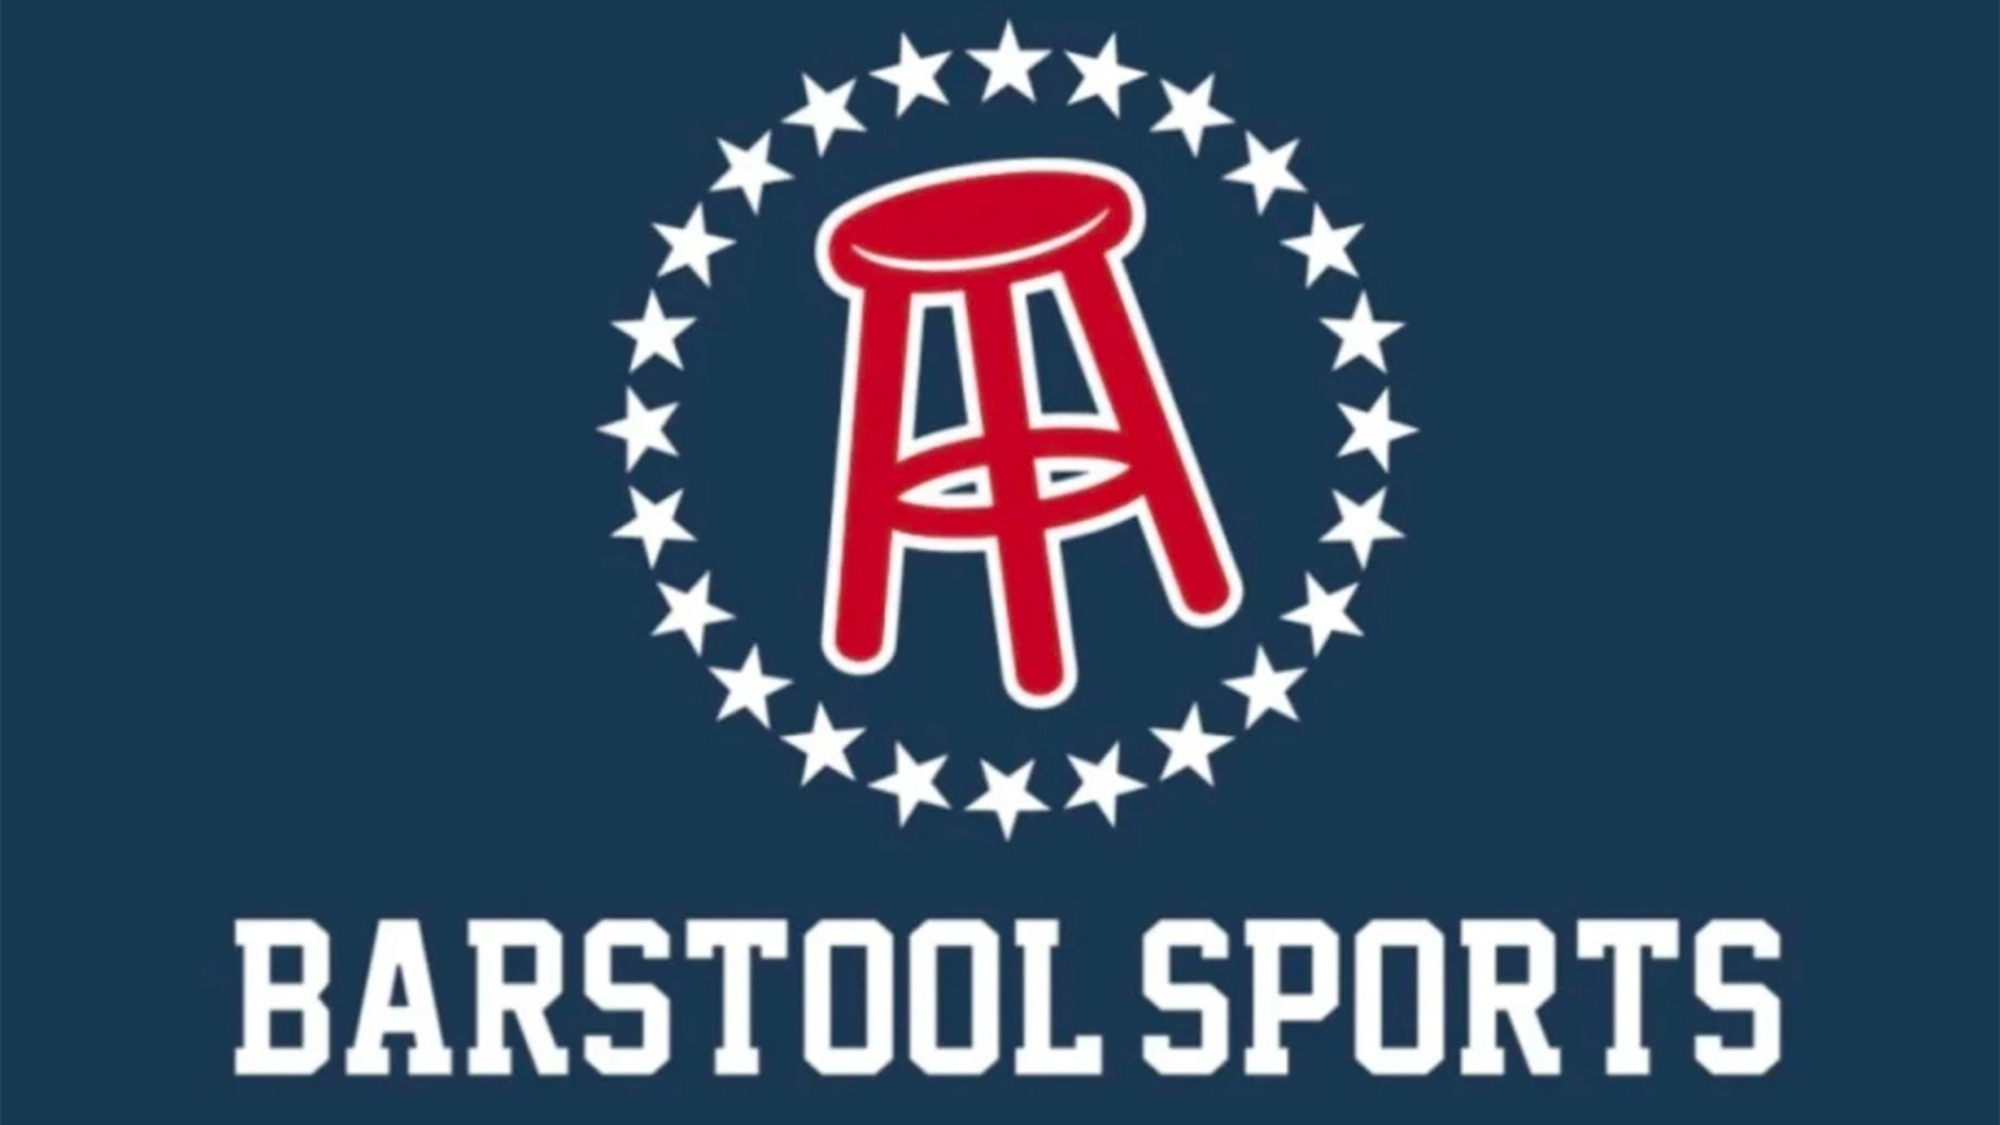 Barstool Sports Is Being Canceled After Trending on Twitter